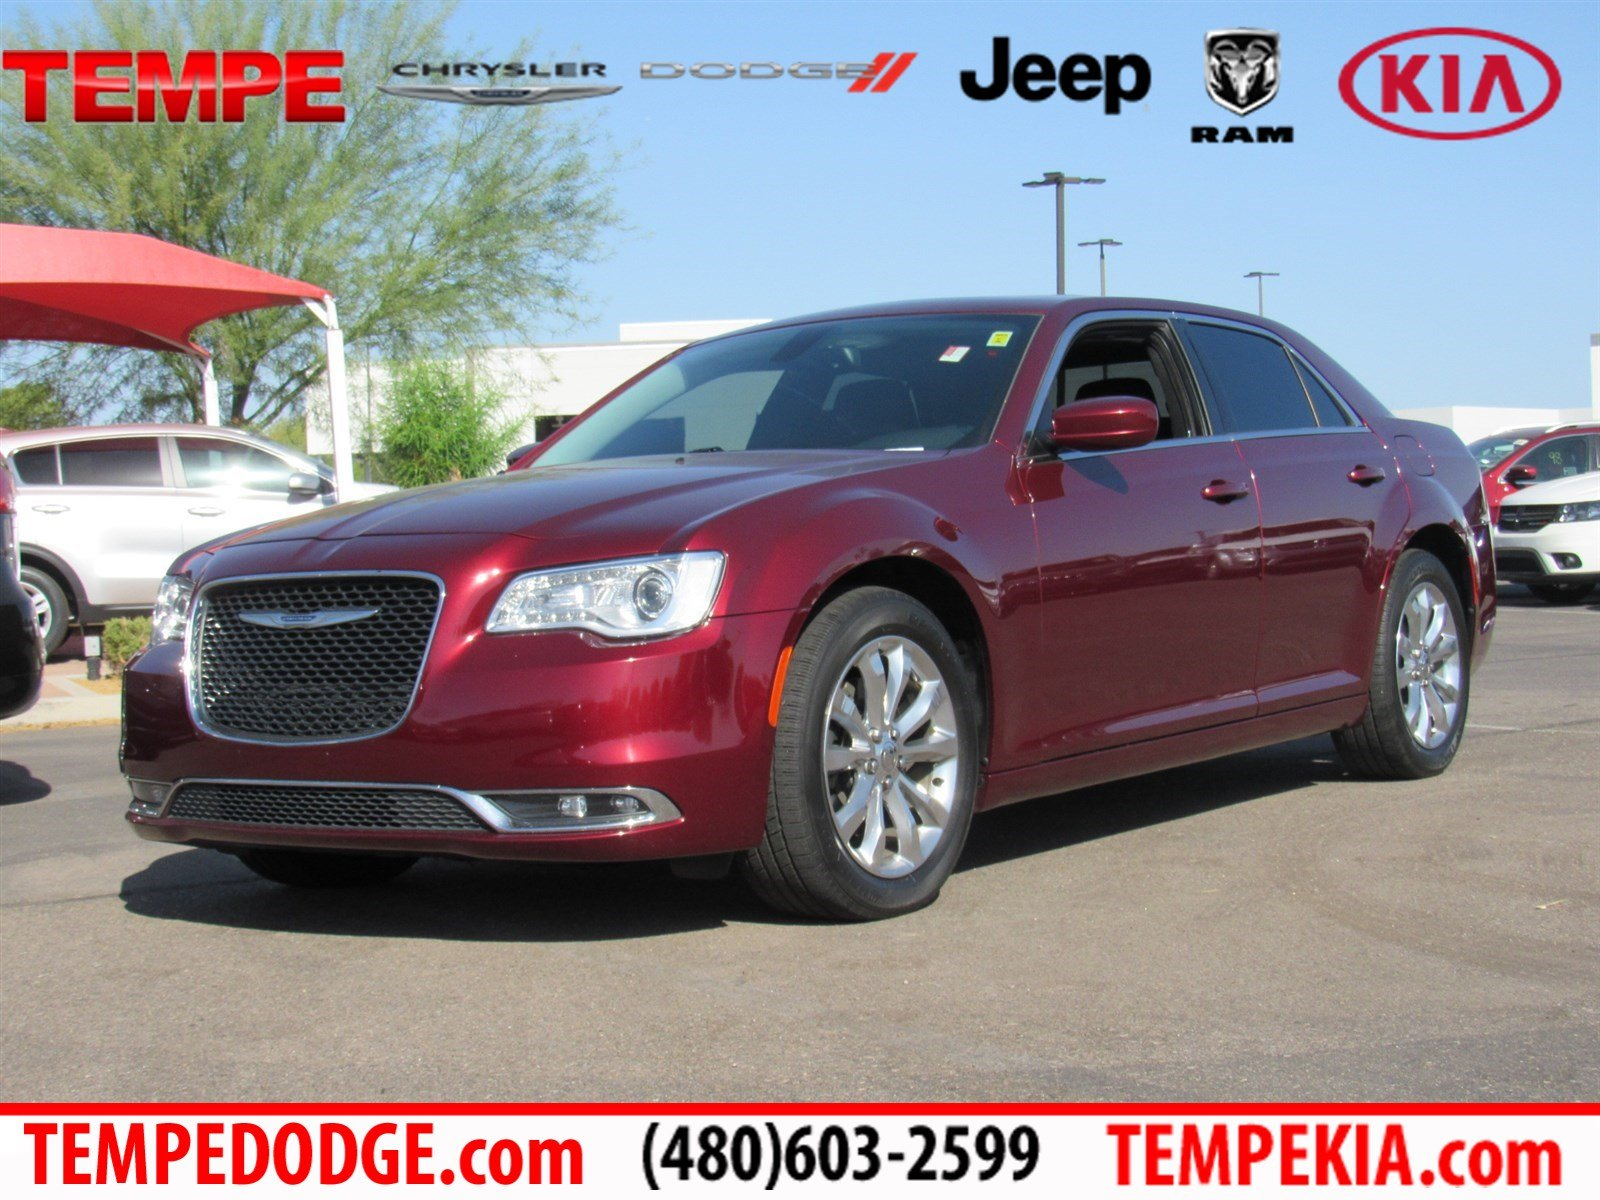 Cars for Sale Near Me Under 3000 Best Of Chrysler 300 for Sale In Phoenix Az Autotrader